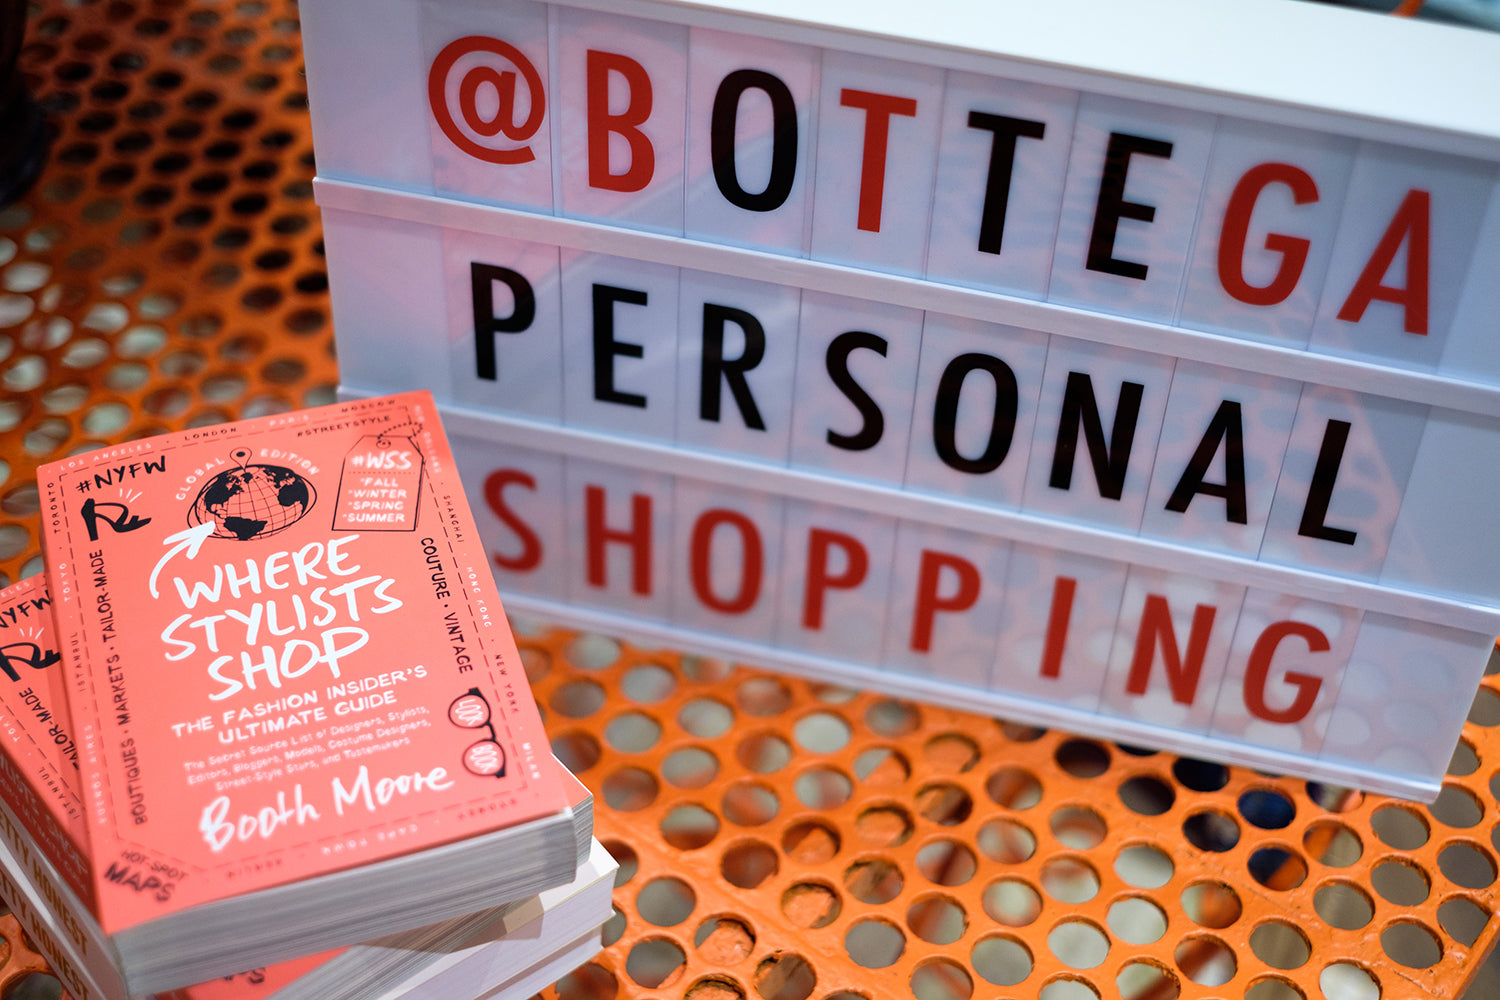 Bottega Personal Shopping Services